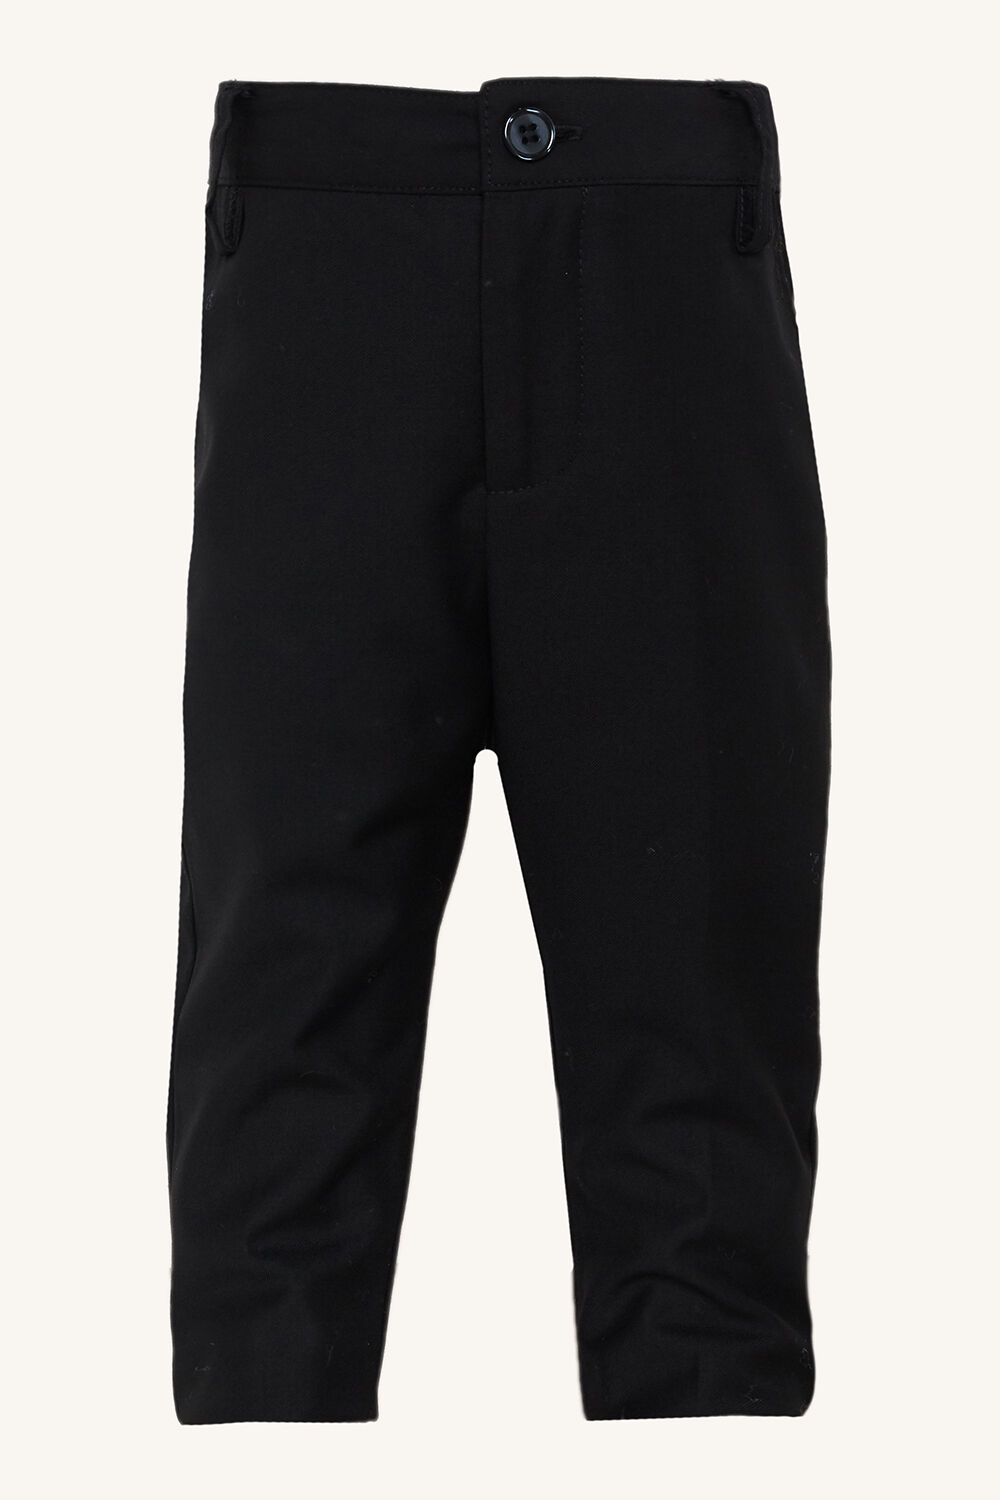 JACK CHINO PANT in colour JET BLACK